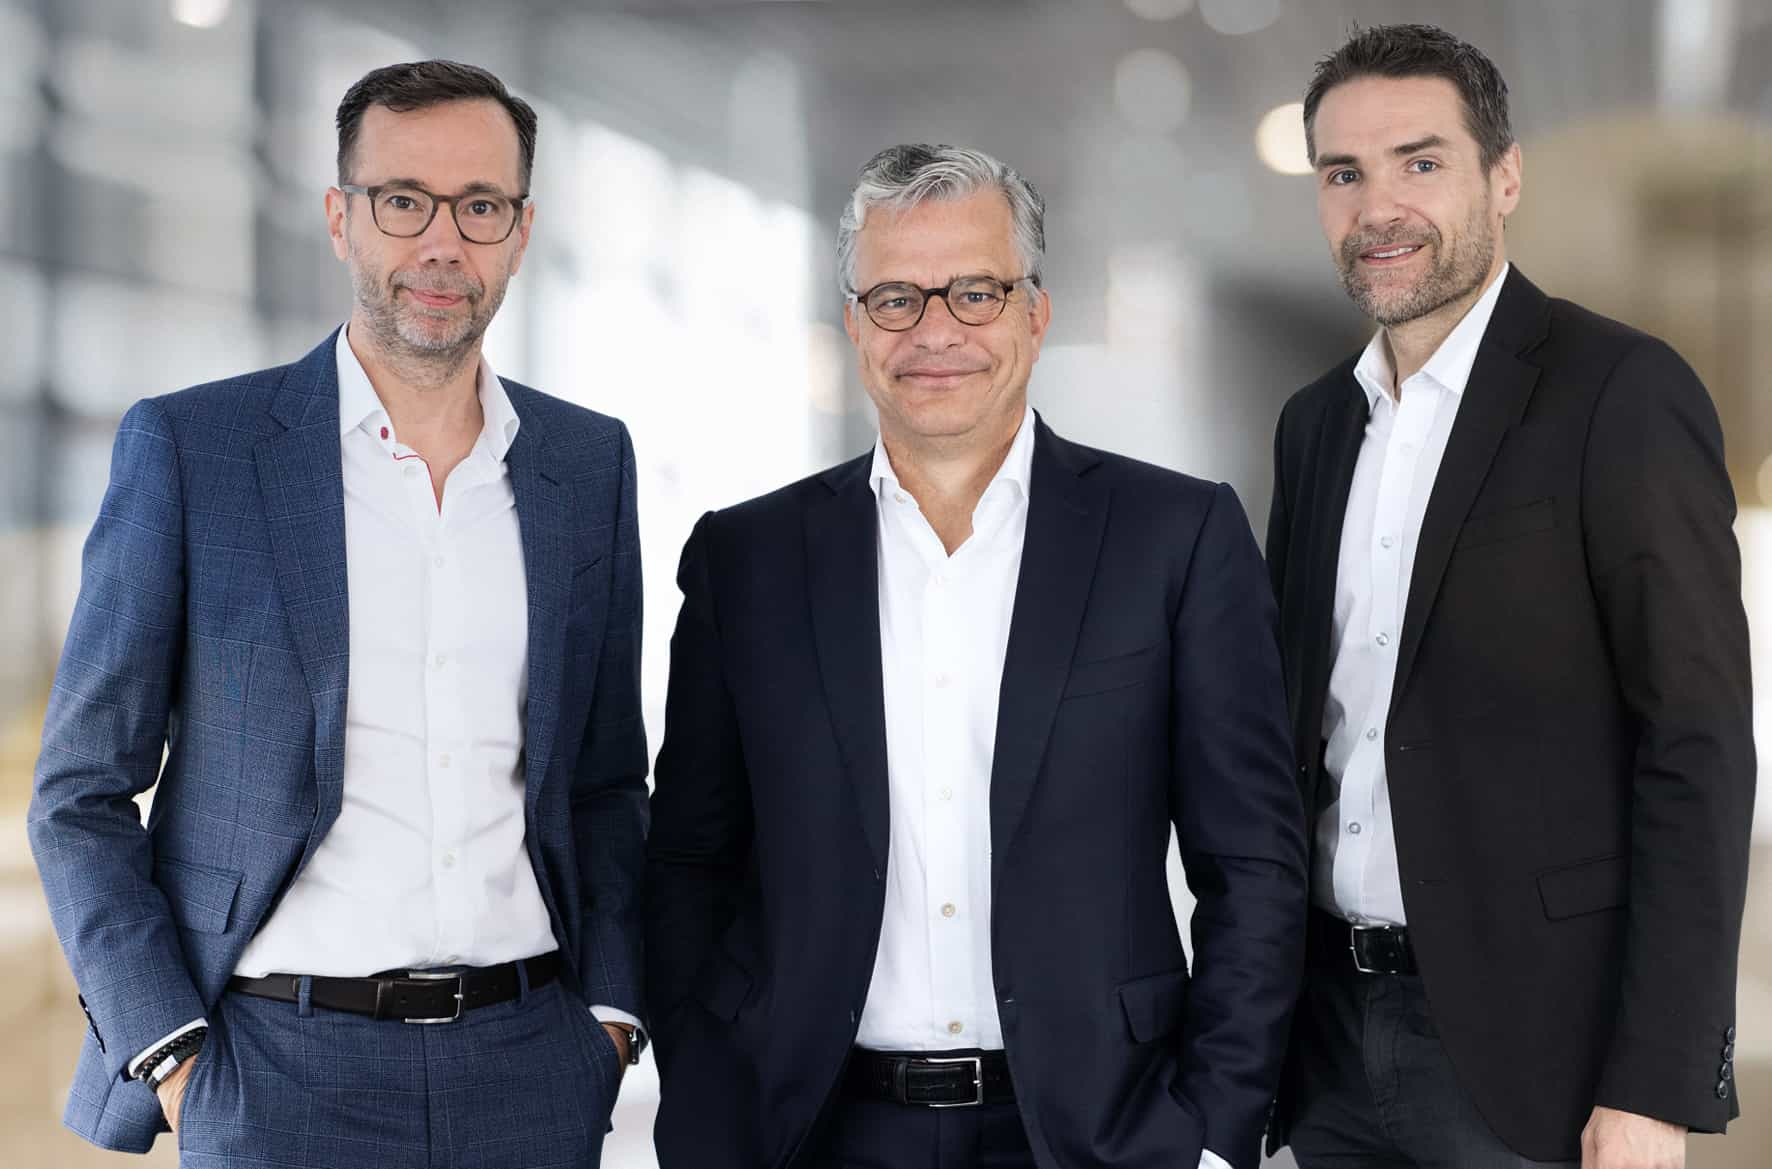 Two New CEOs Appointed at Deutsche Handelsbank as Bank Focuses on Fintech, SMEs